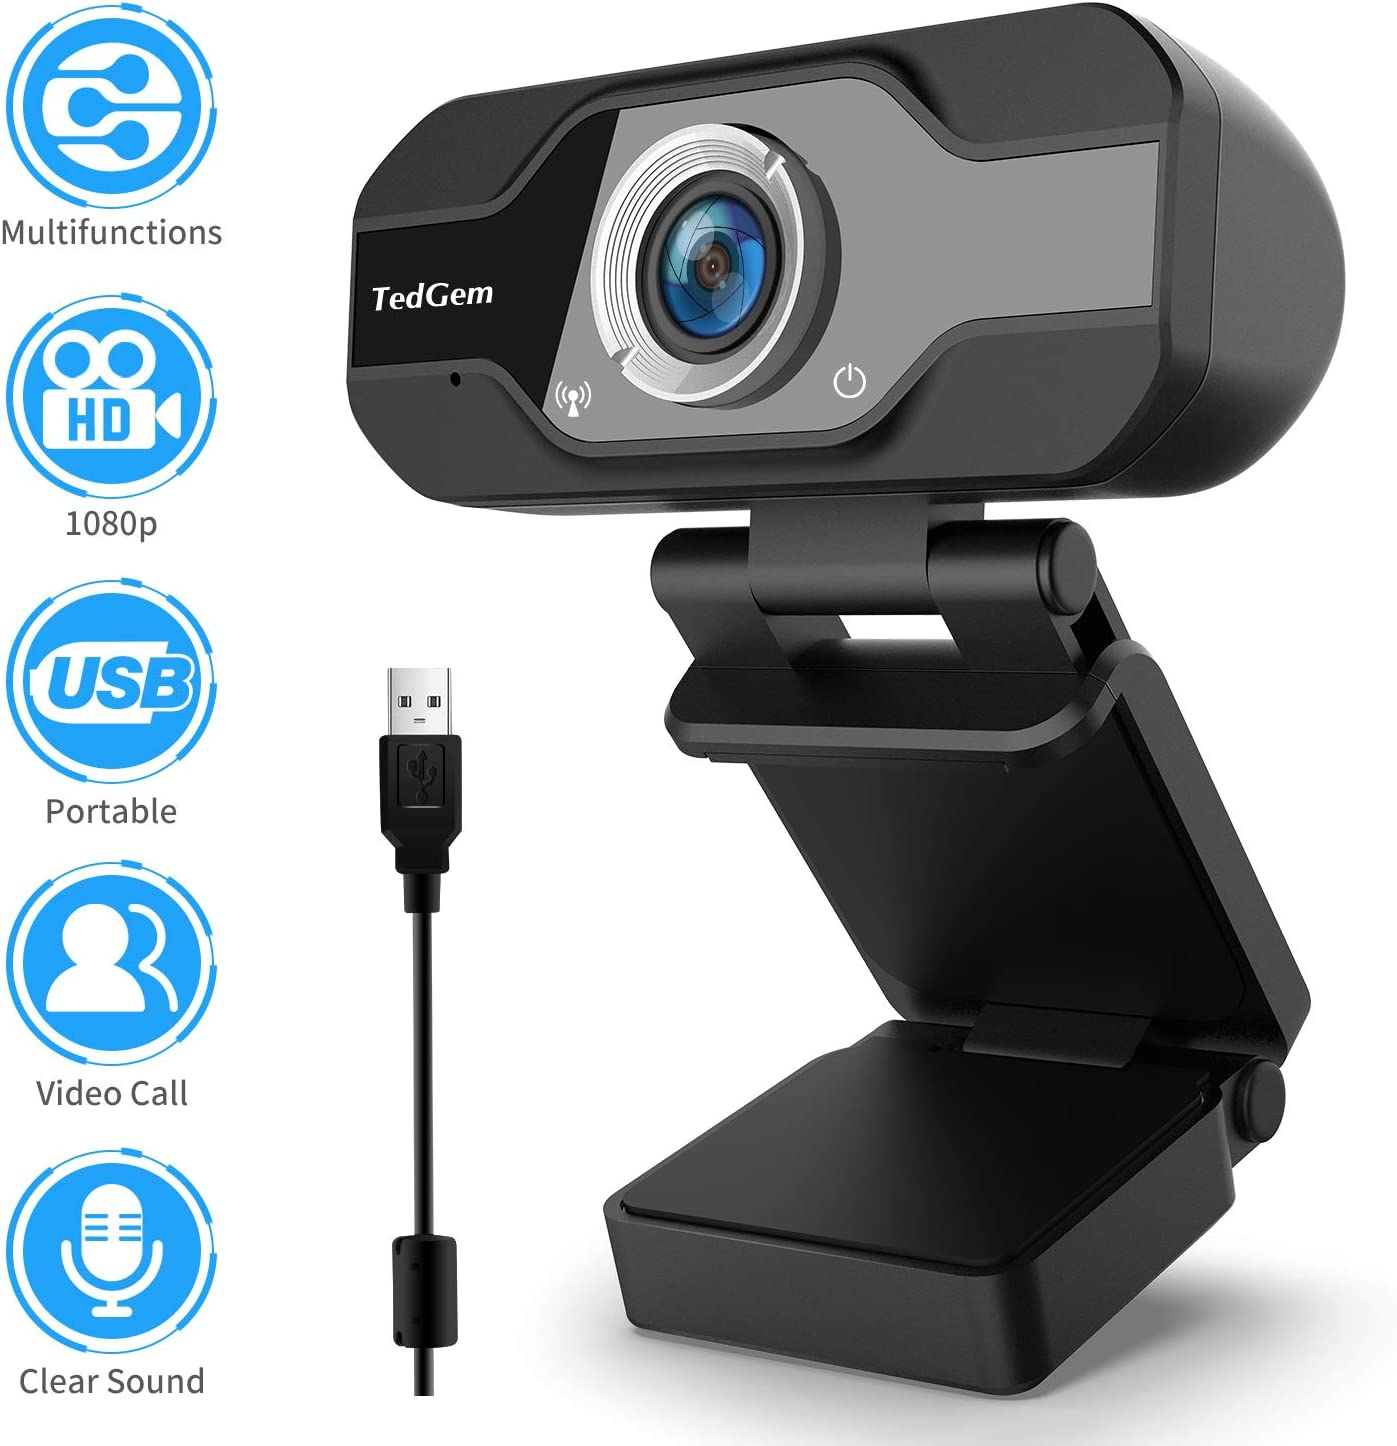 Webcam for Laptop USB, TedGem1080P PC Camera Webcam, Computer Camera with Microphone for Streaming, Video Calling and Recording, Gaming, Supports Windows, Android, Linux